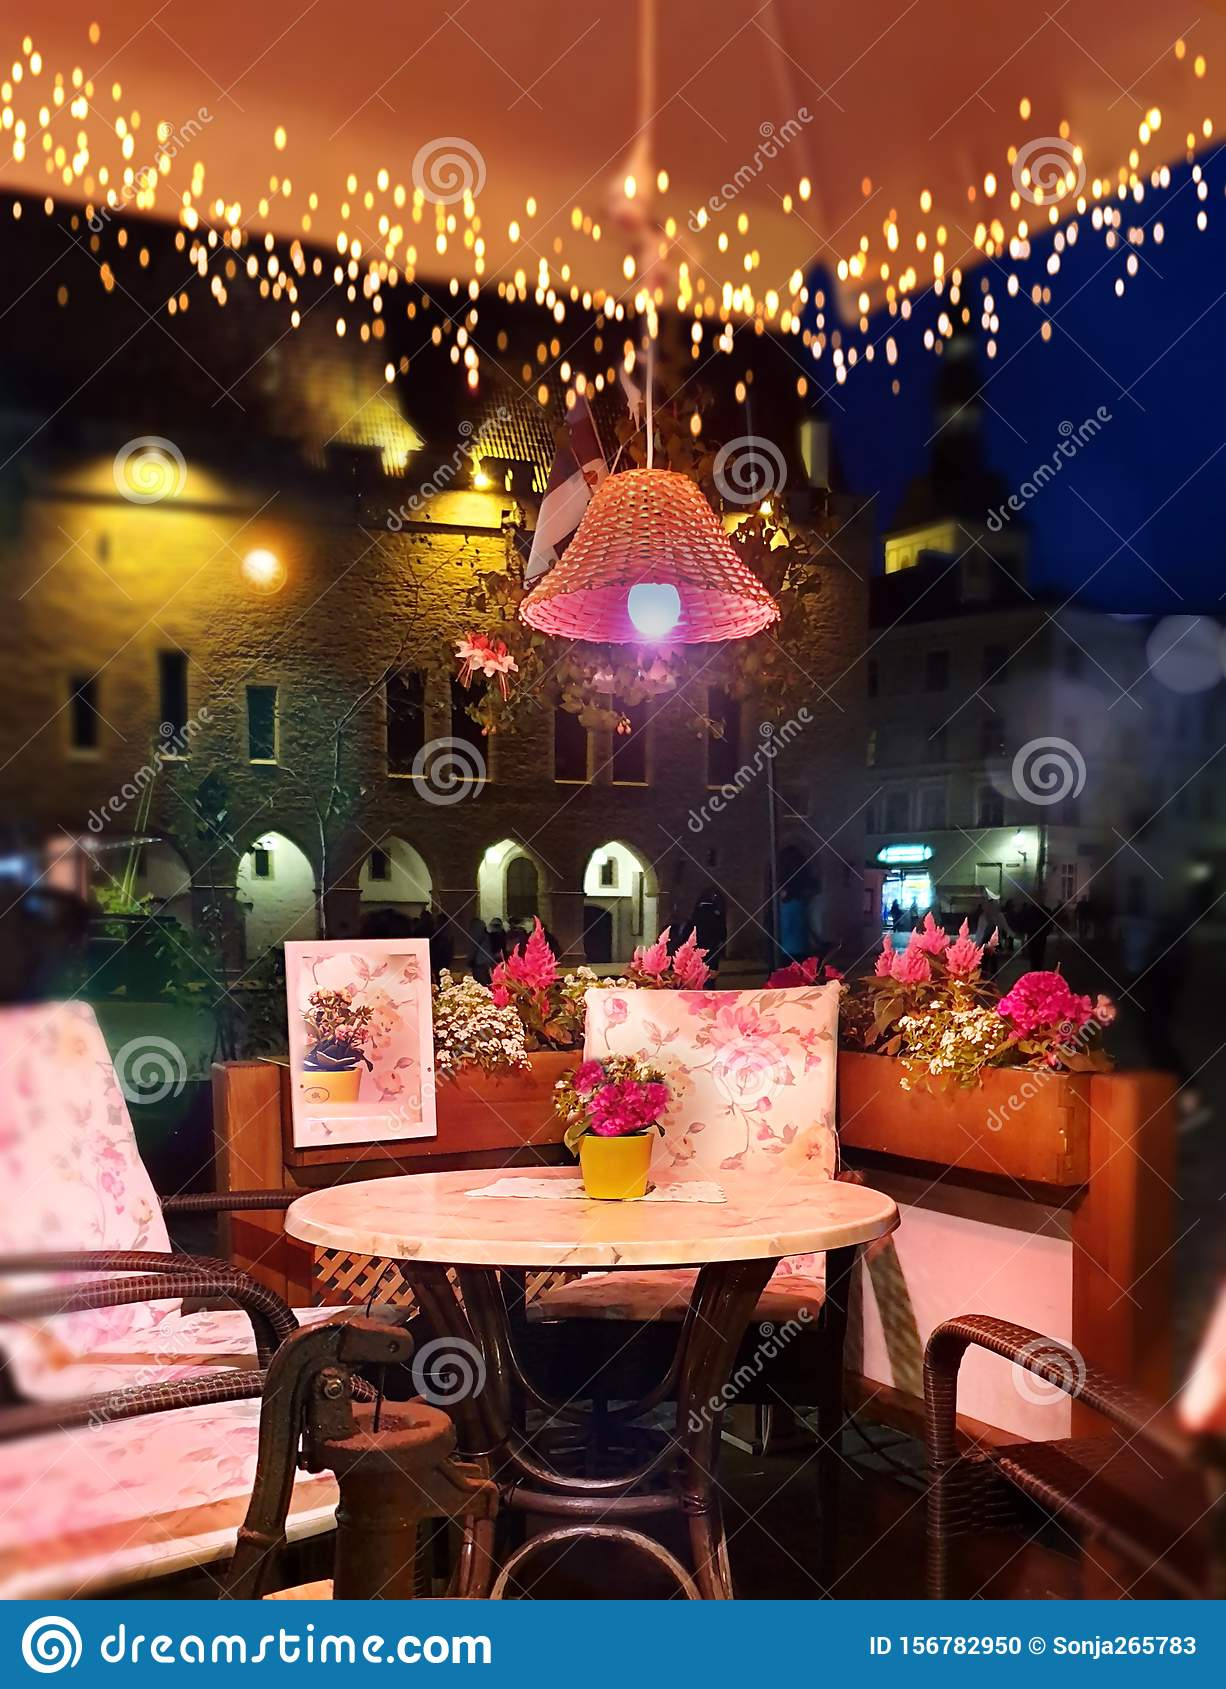 Summer Evening Lighting Illumination Street Cafe Decoration Table With Flowers On Top And Lamp Restaurant Outdoor In The City Rela Stock Photo Image Of Life Reflection 156782950